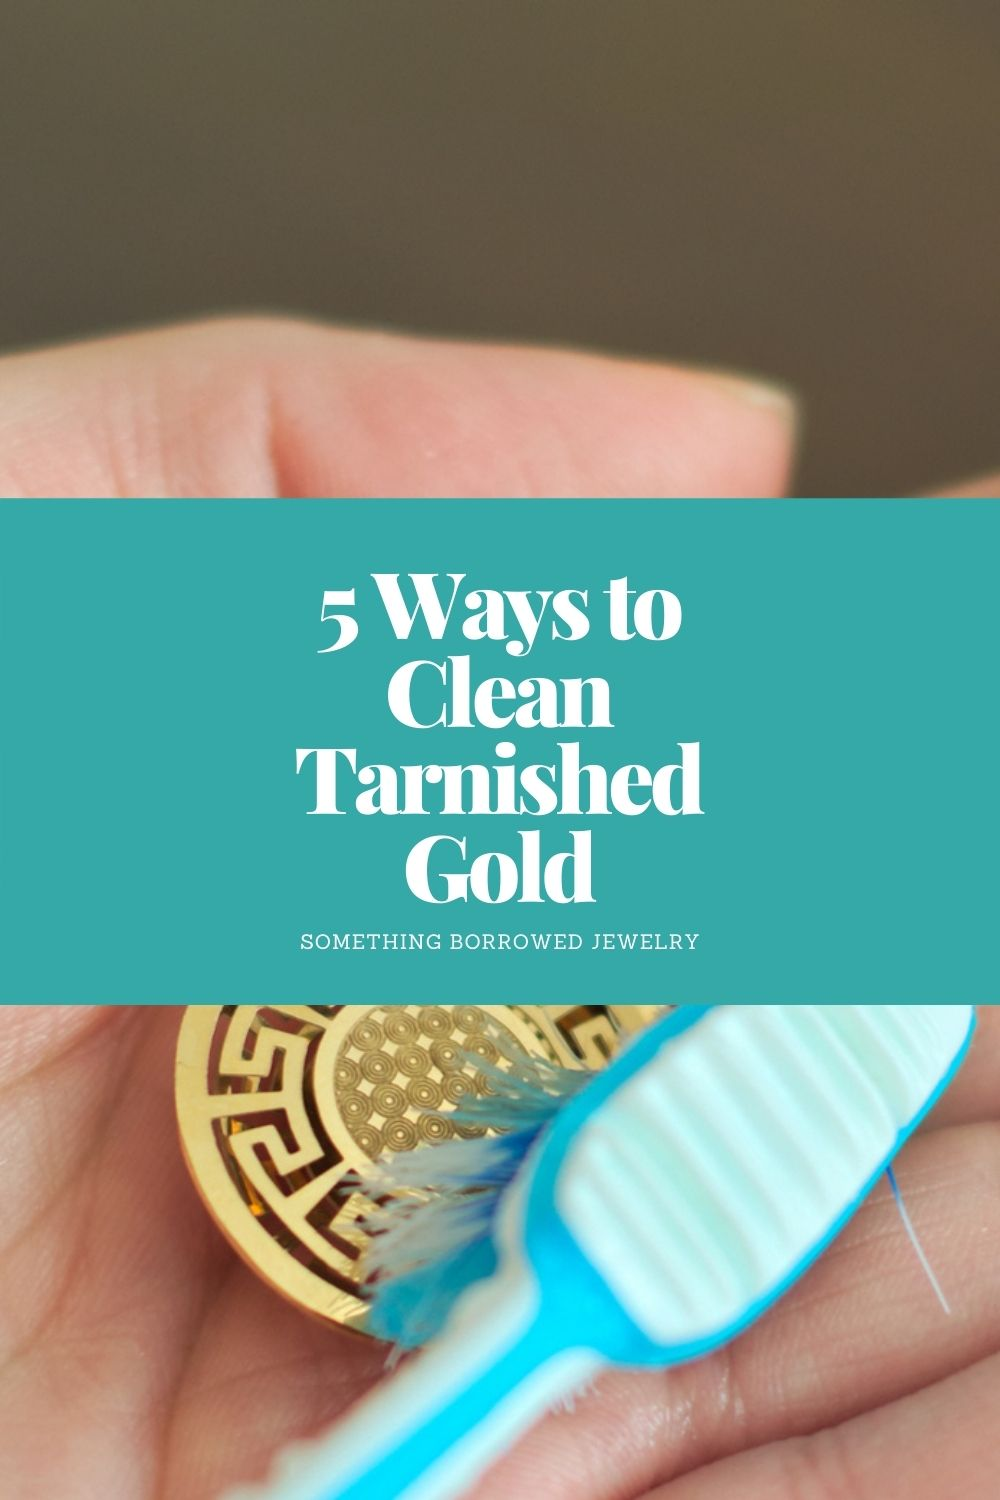 5 Ways to Clean Tarnished Gold pin 2